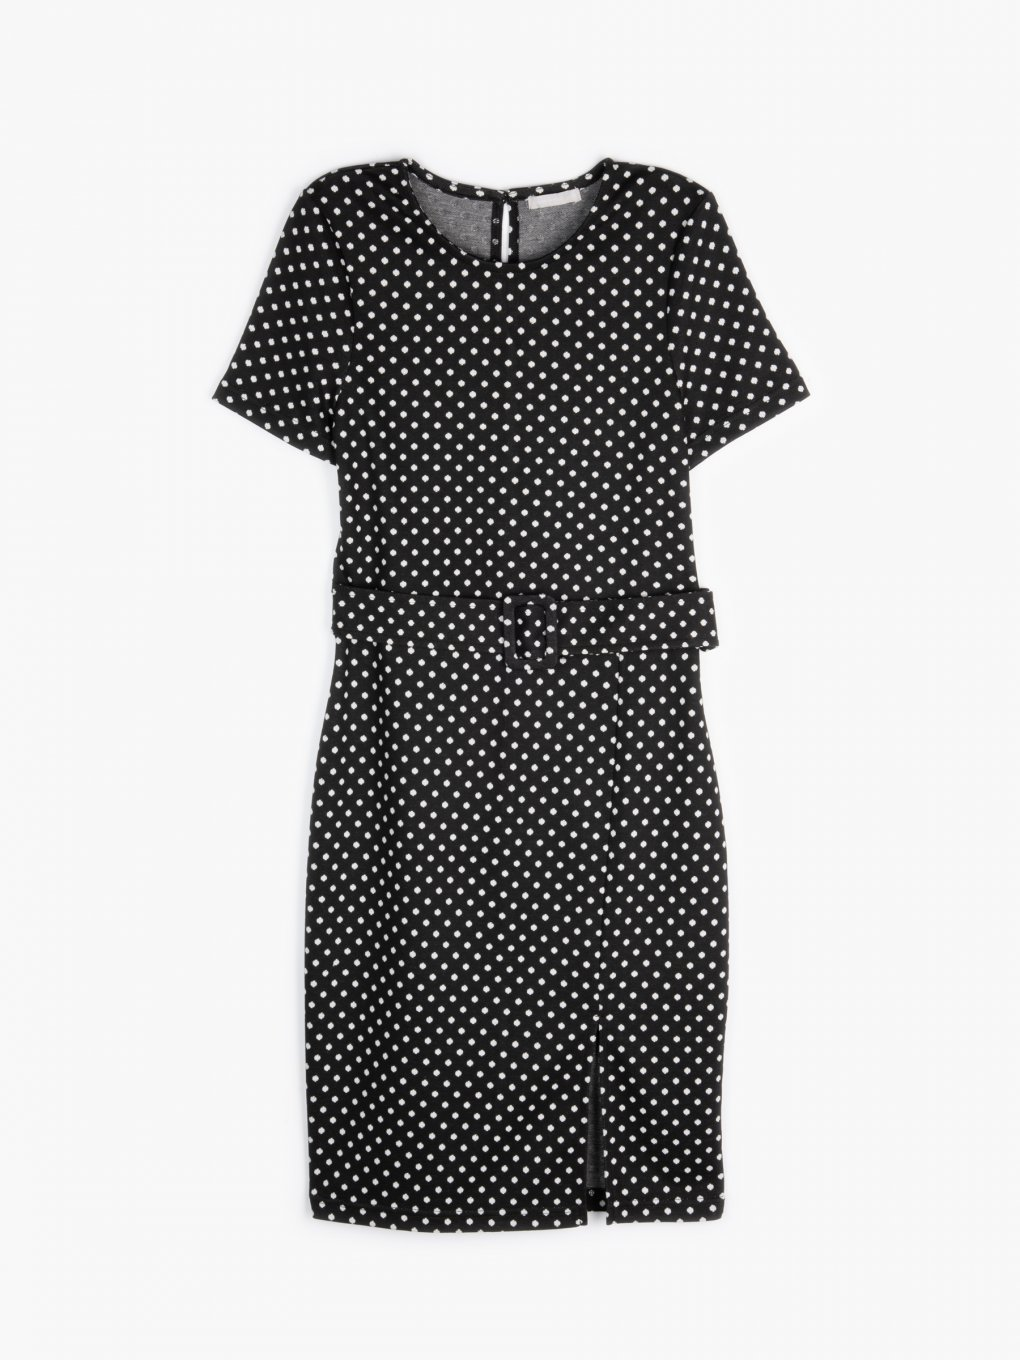 Polka dot print jersey dress